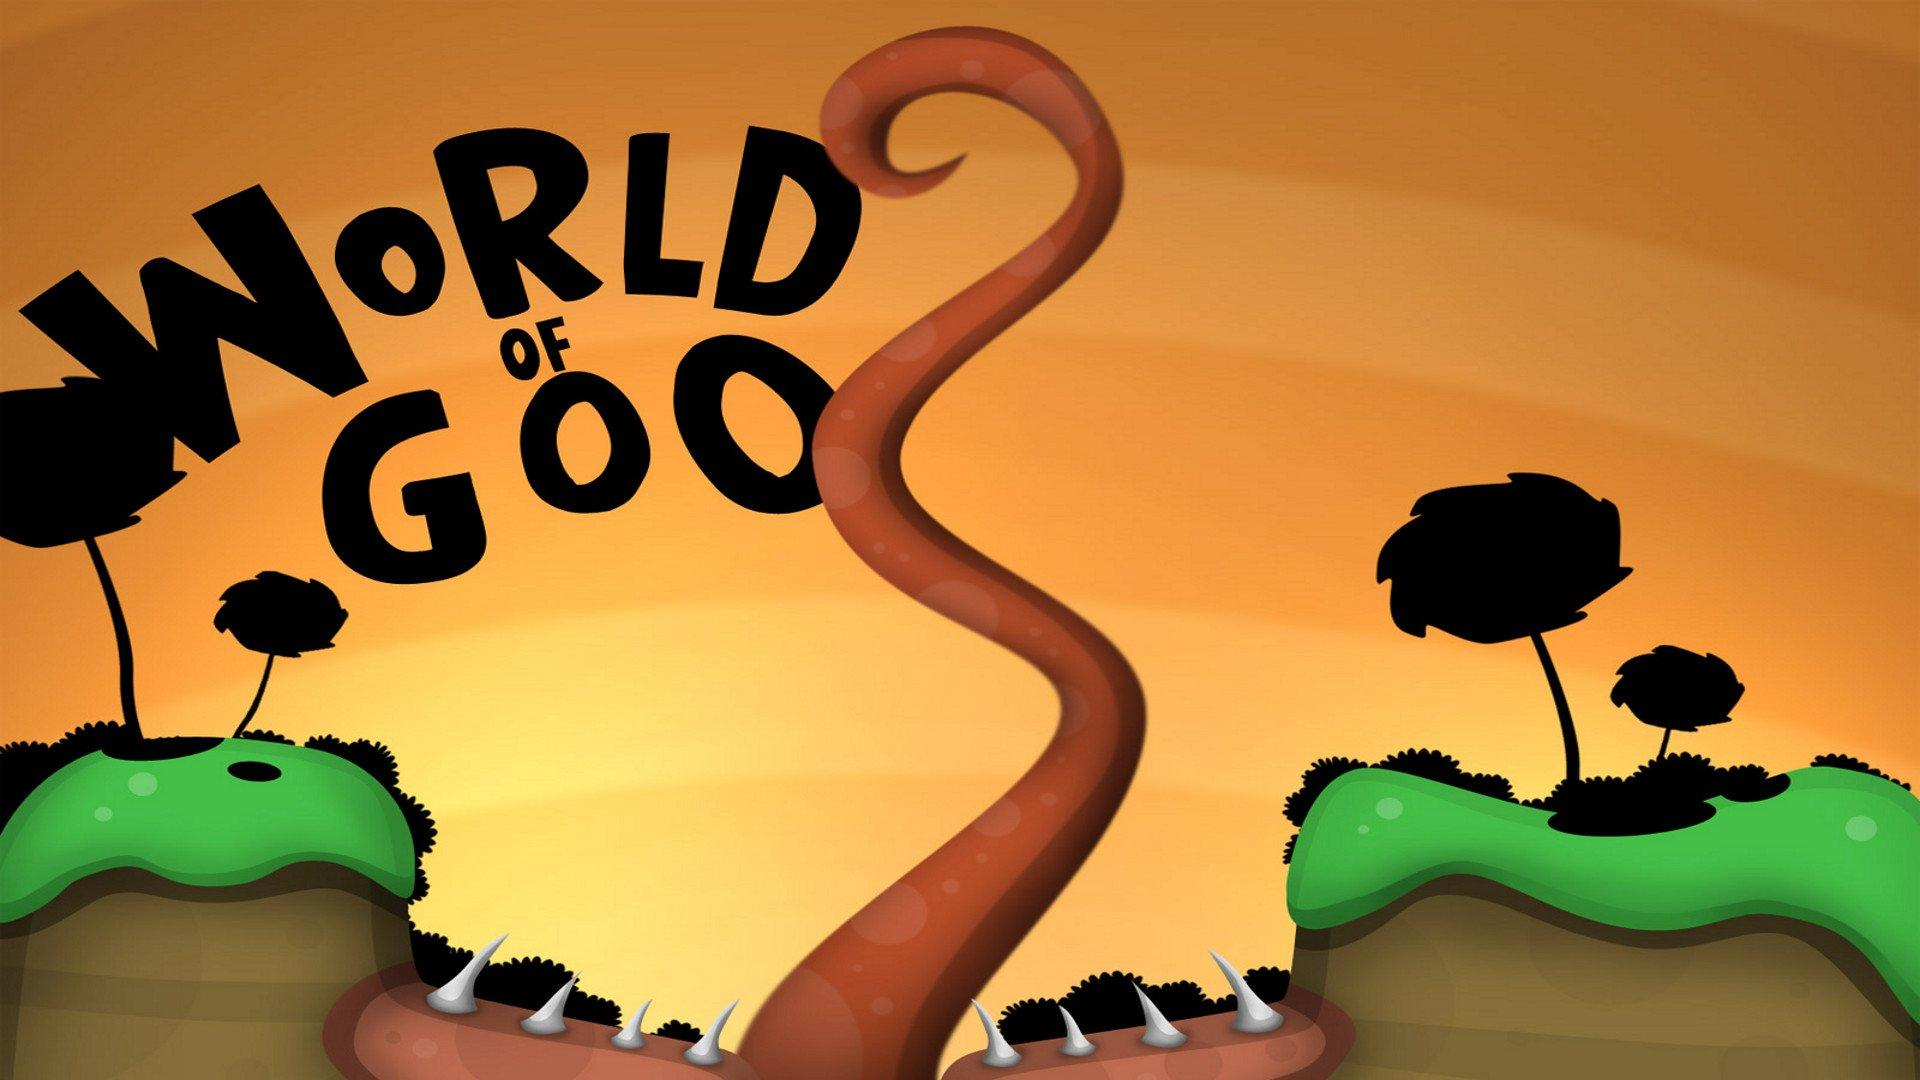 World of Goo HD Wallpapers